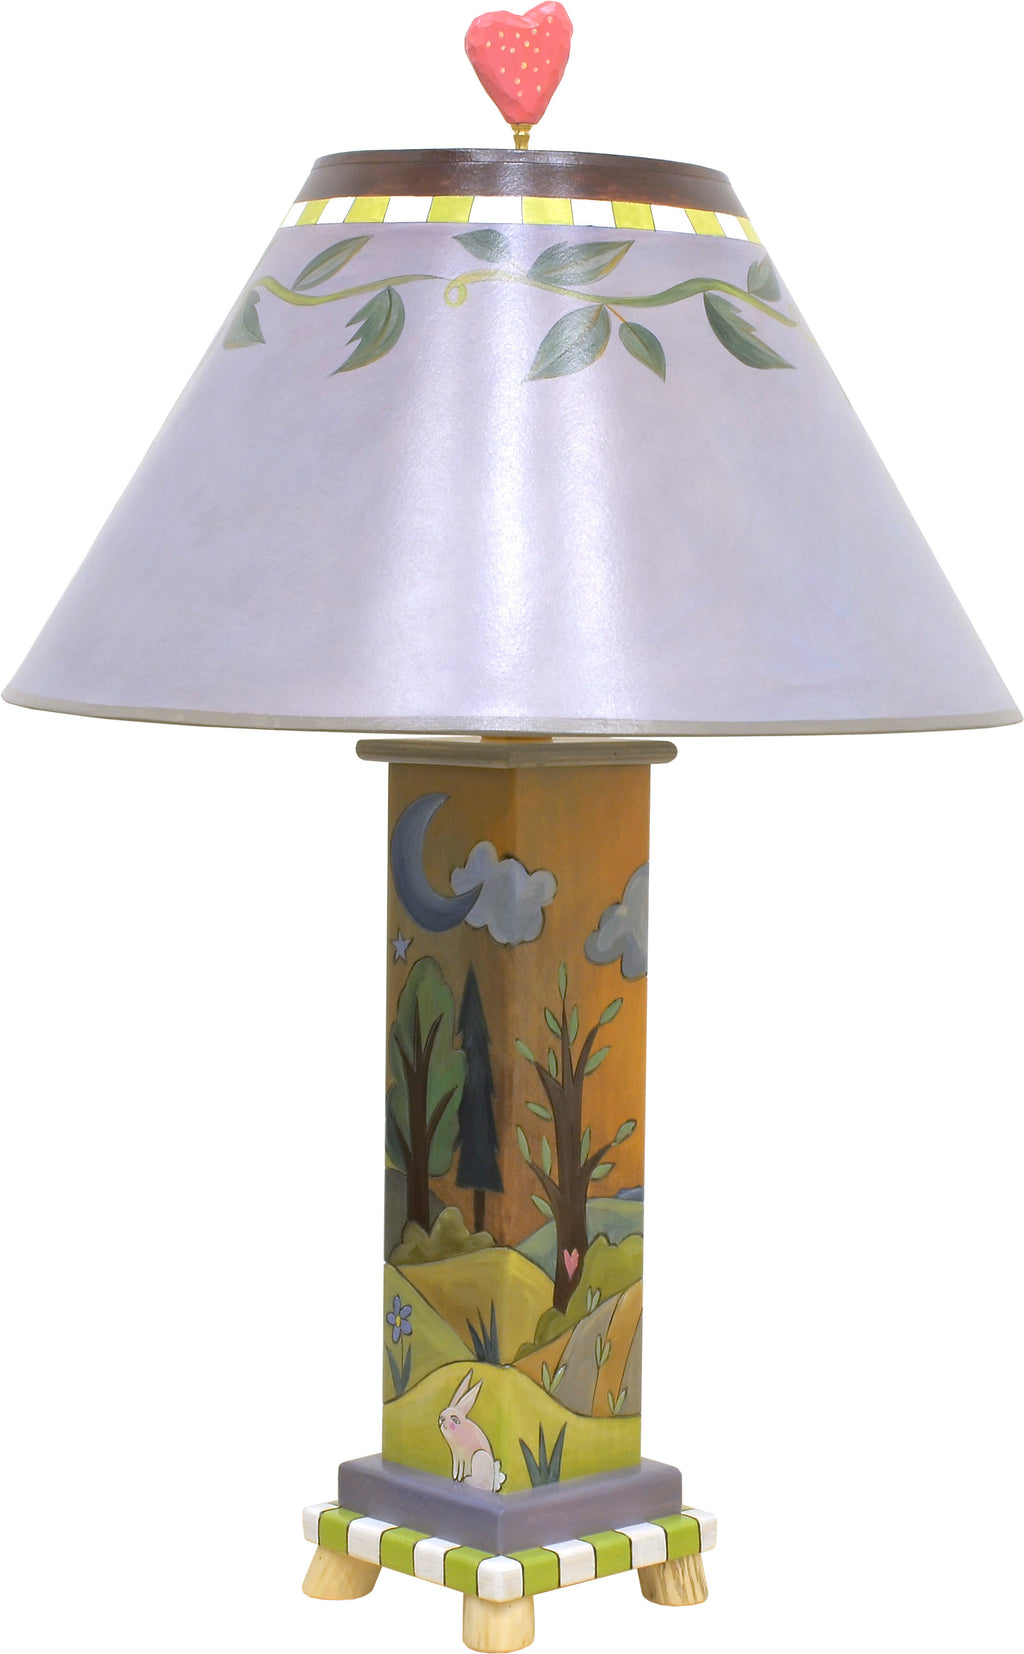 Contemporary lamp with simple vine shade and rolling hills landscape on its base, front side